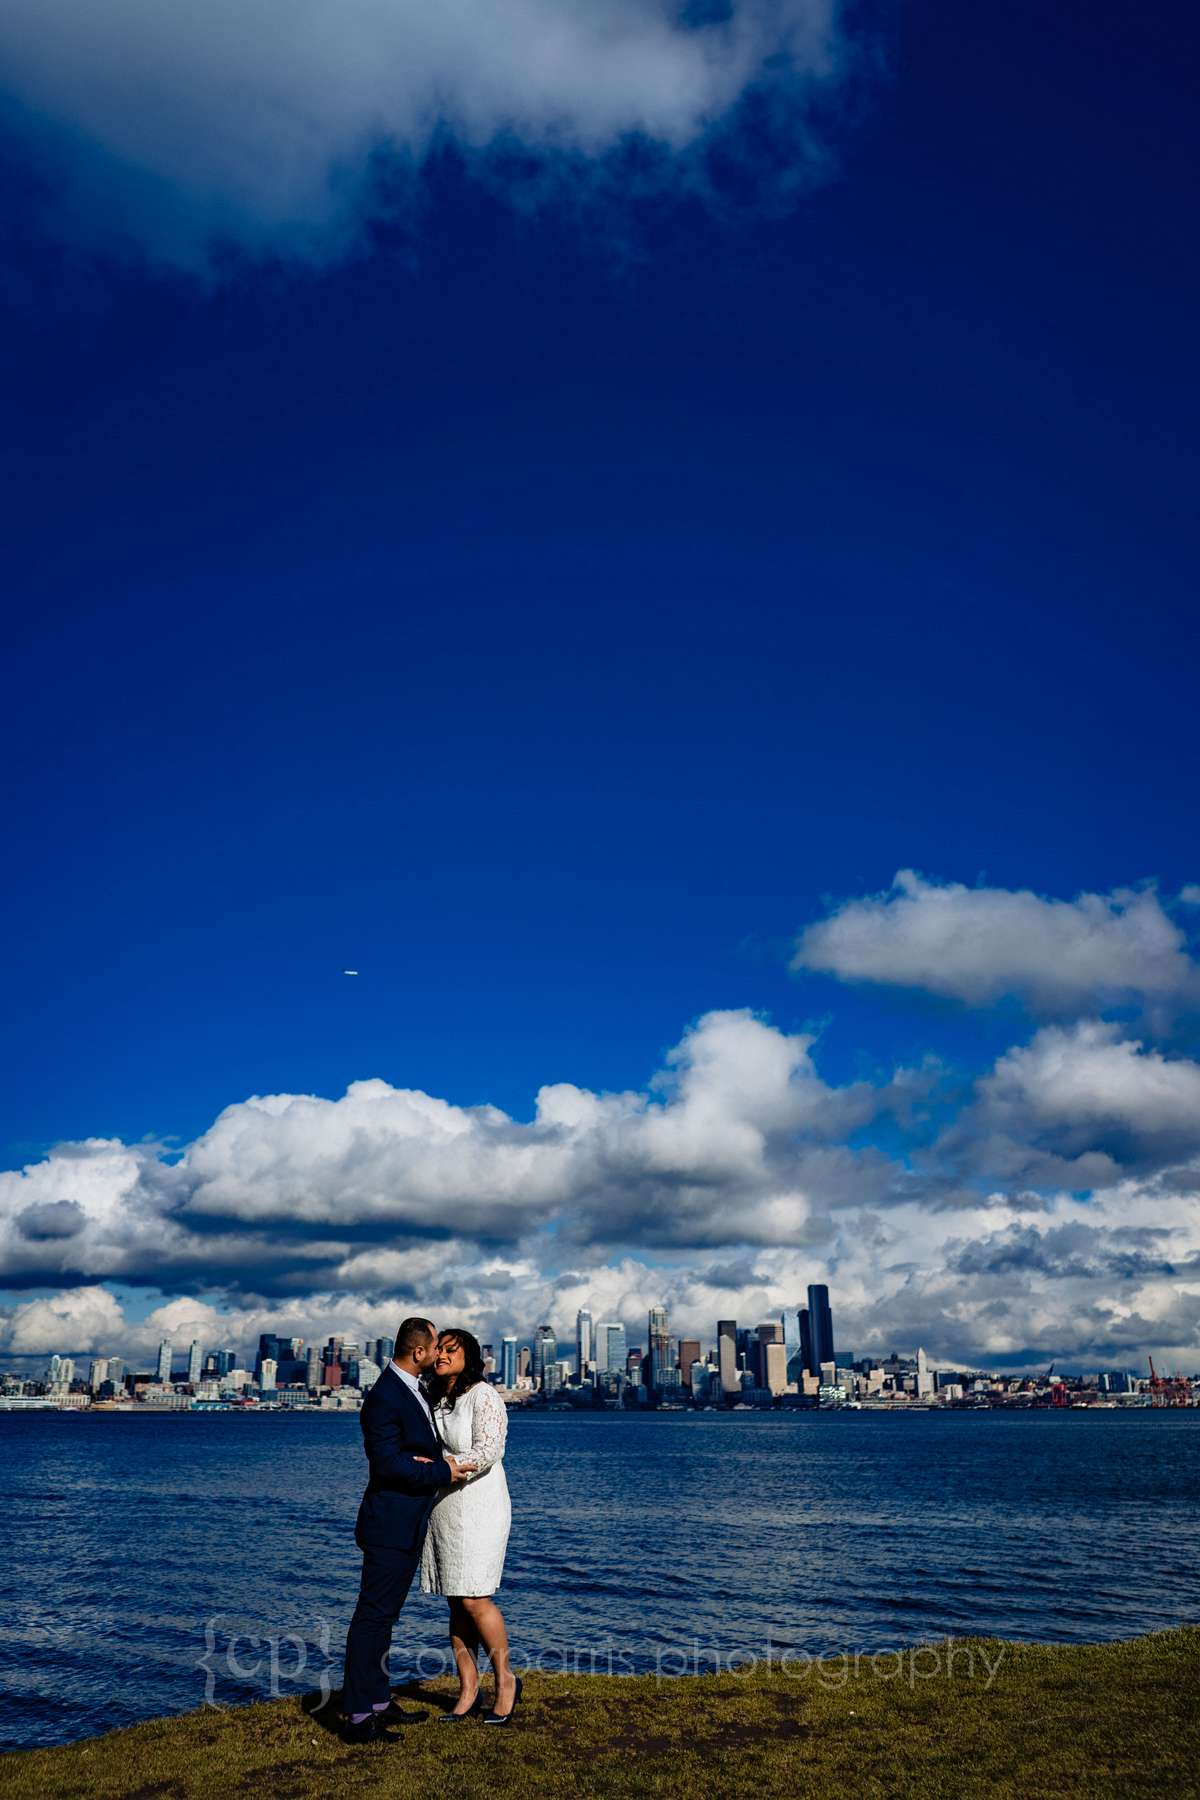 027-seattle-courthouse-elopement.jpg